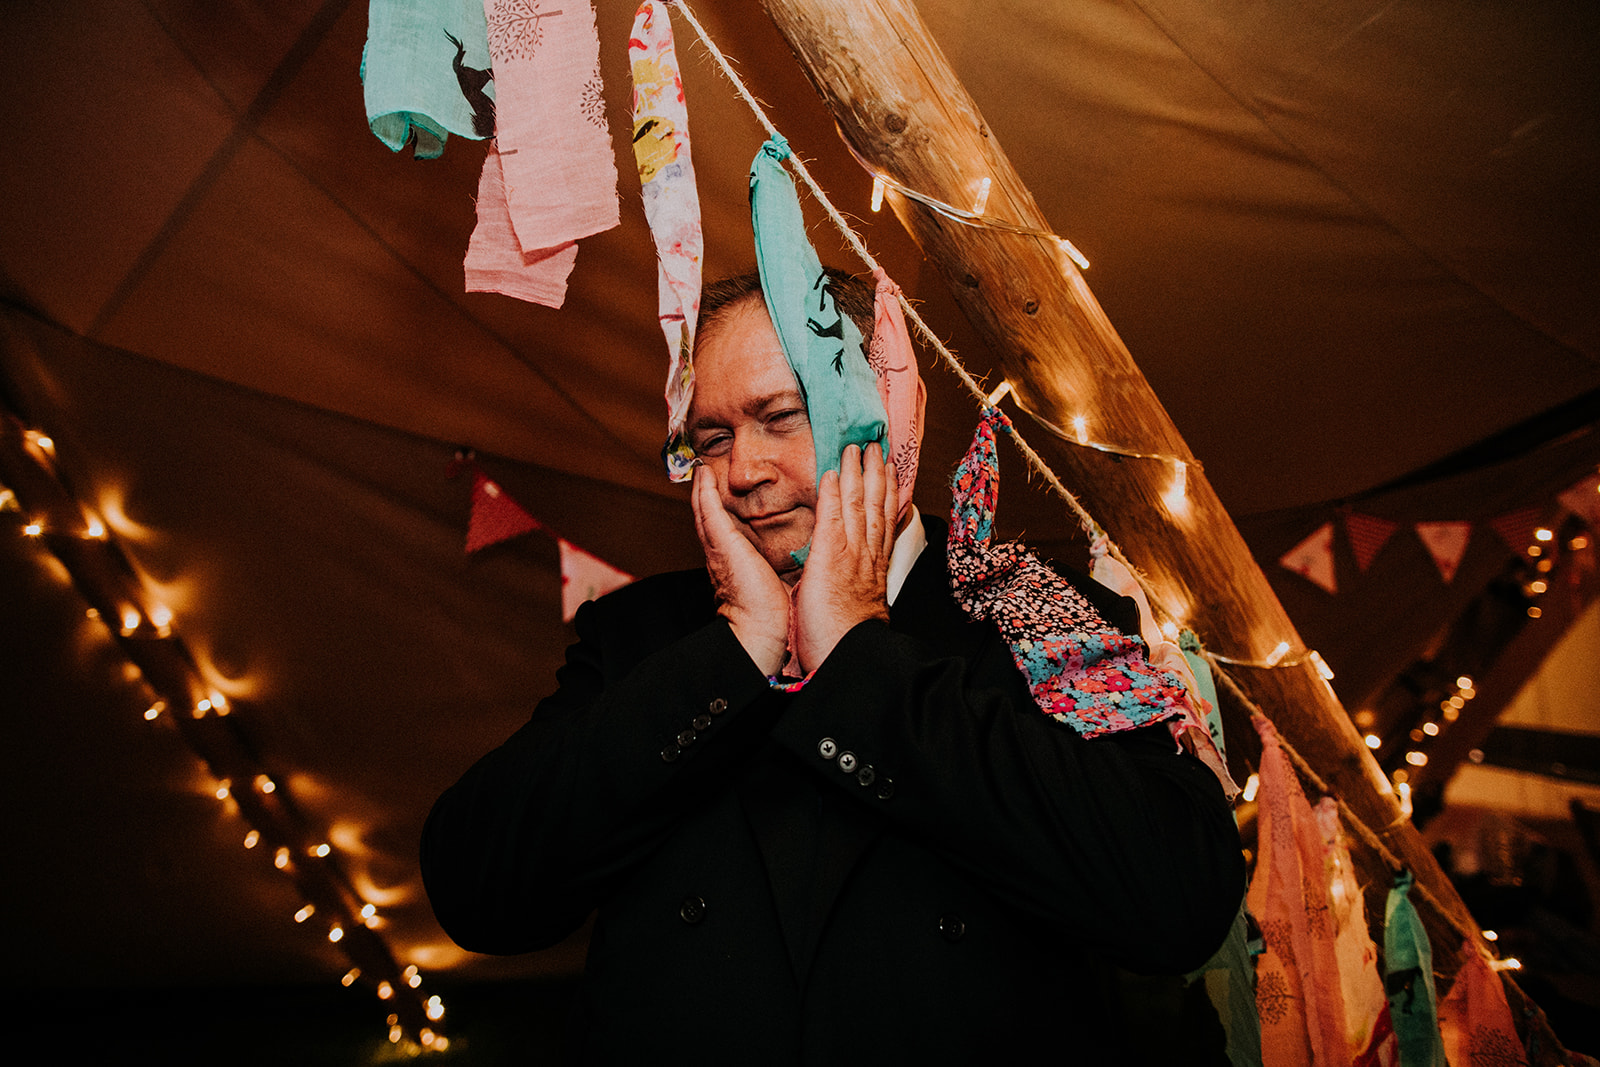 Rag bunting in tipis - cattows farm wedding with sami tipi